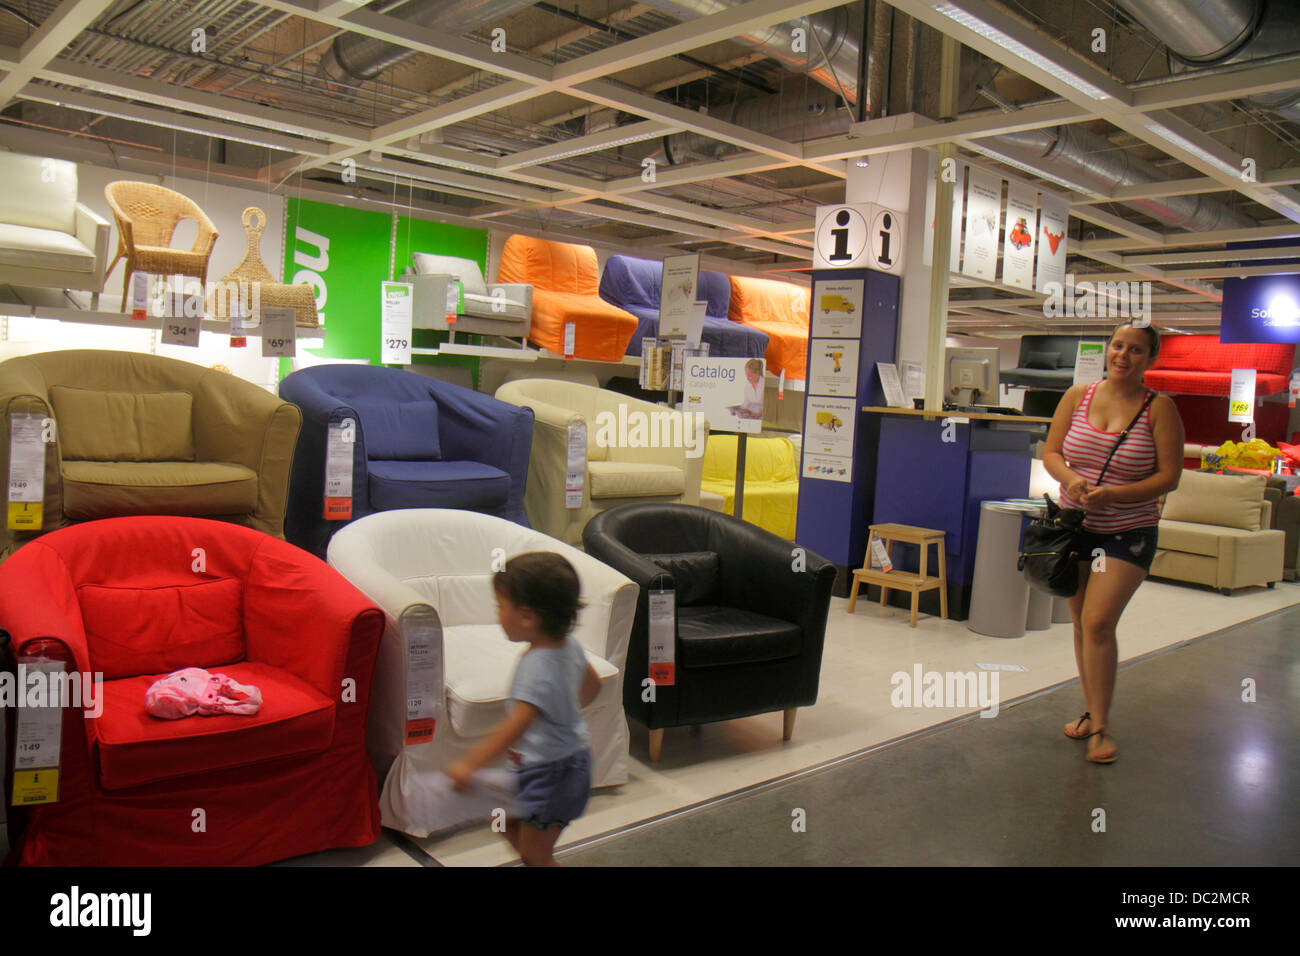 Florida sunrise fort ft lauderdale ikea home furnishings furniture shopping sale retail display chairs seating upholstered